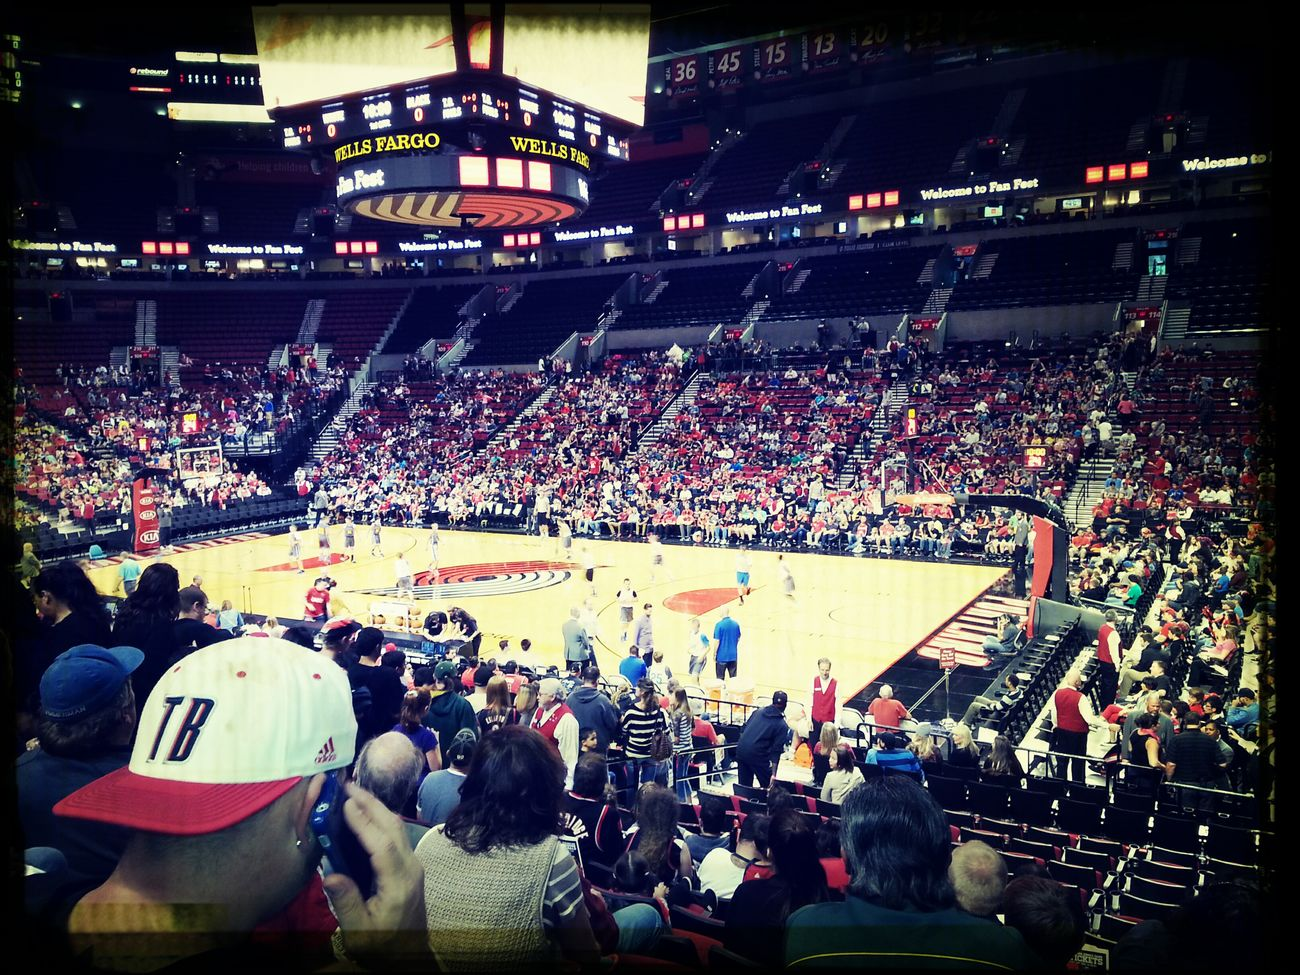 Portland Trail Blazers Ripcity Basketball Game